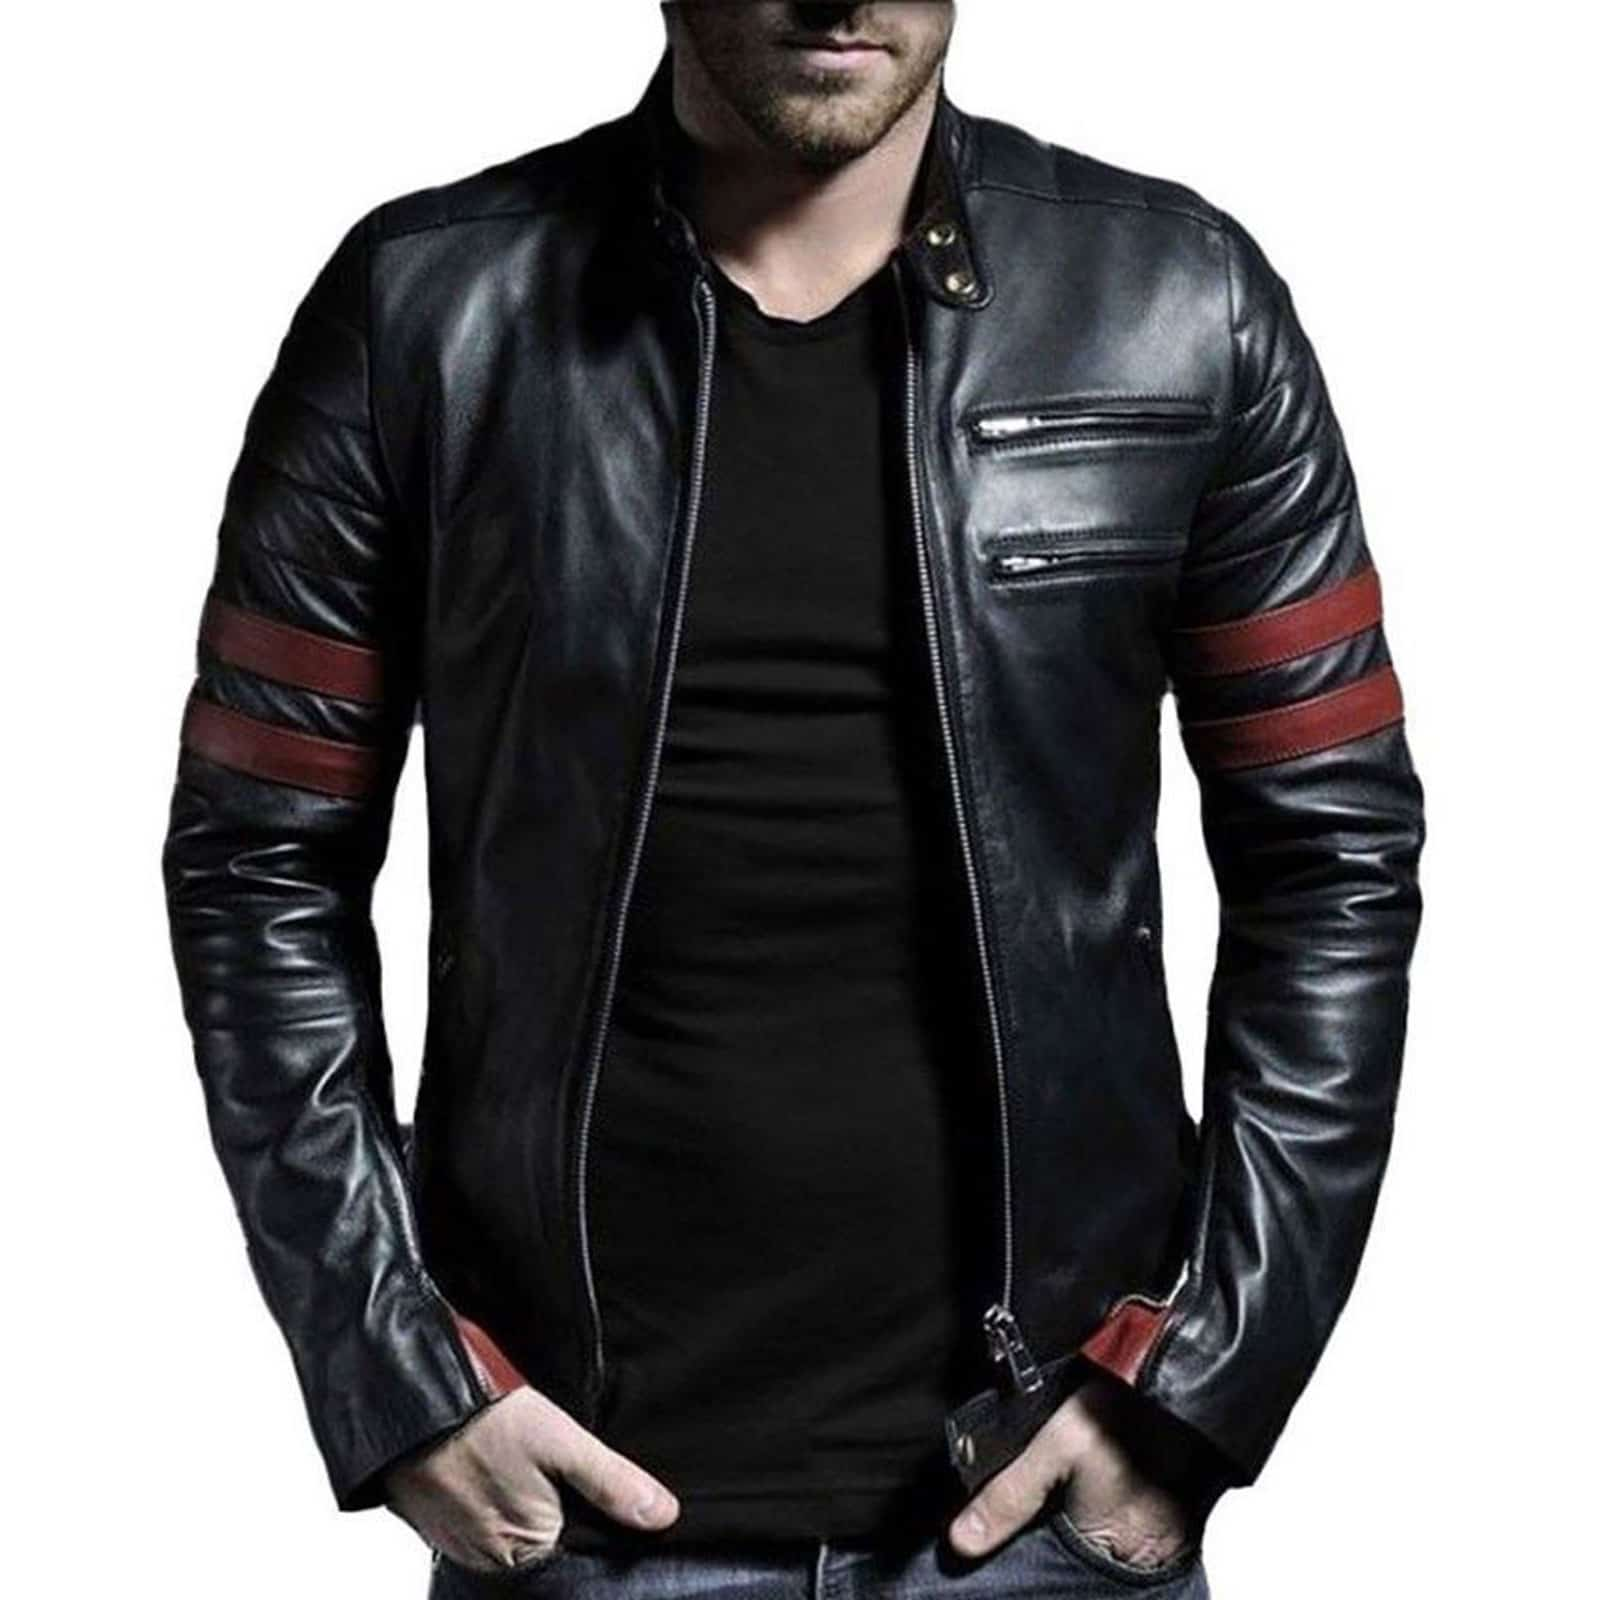 Leather Jacket with Straps | Men's Leather Jacket for Sale ...